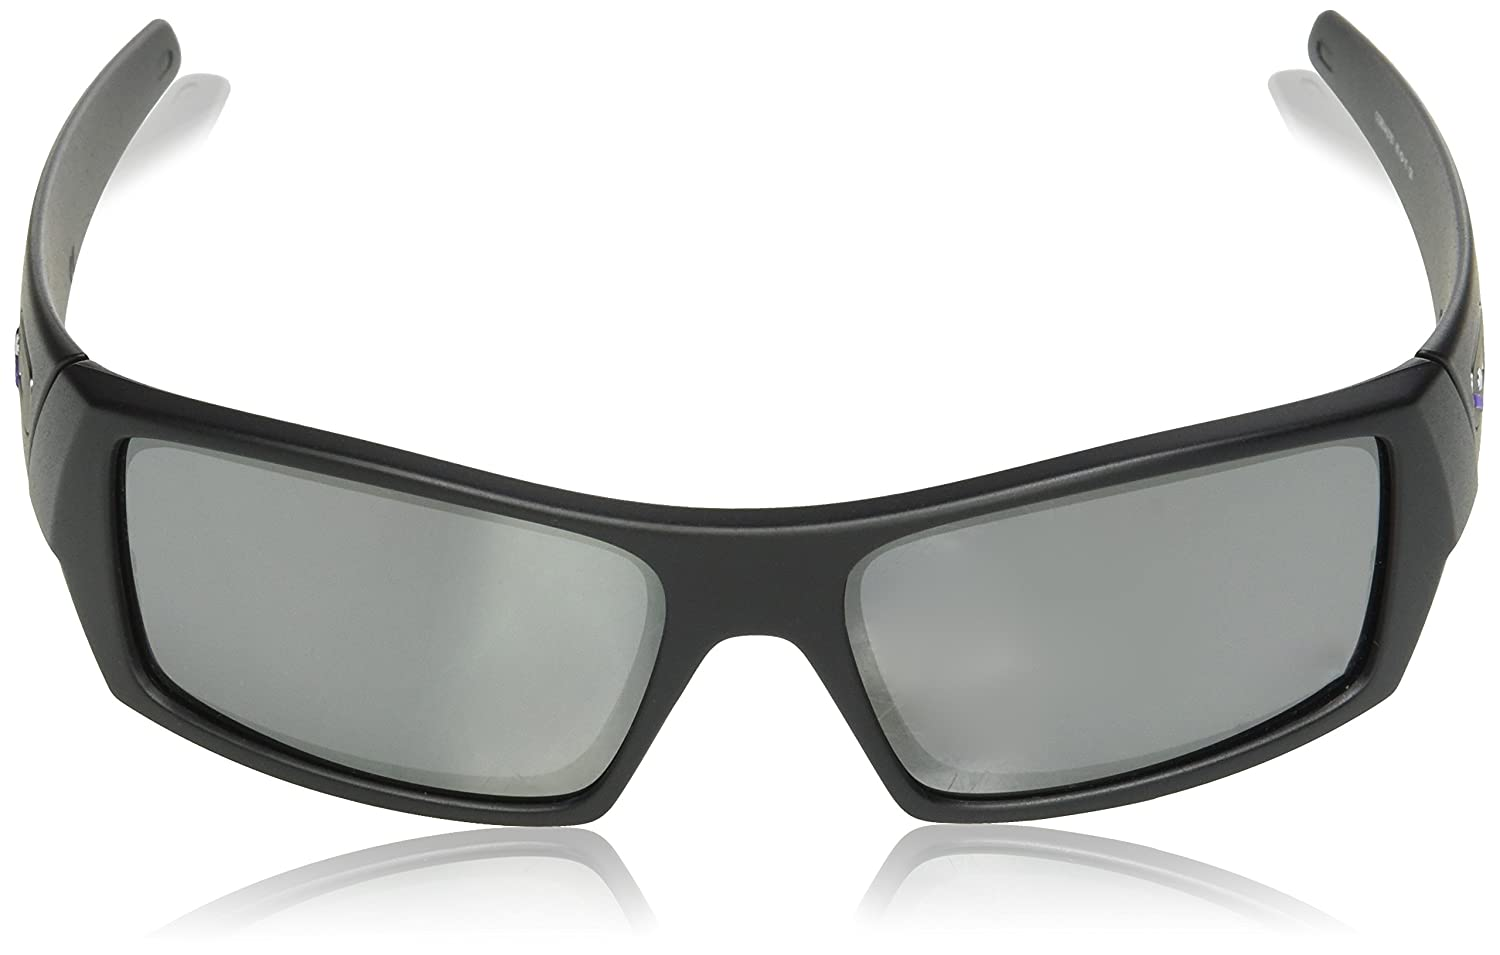 6b305e2d09 Amazon.com  Oakley Mens Gascan Infinite Hero Sunglasses